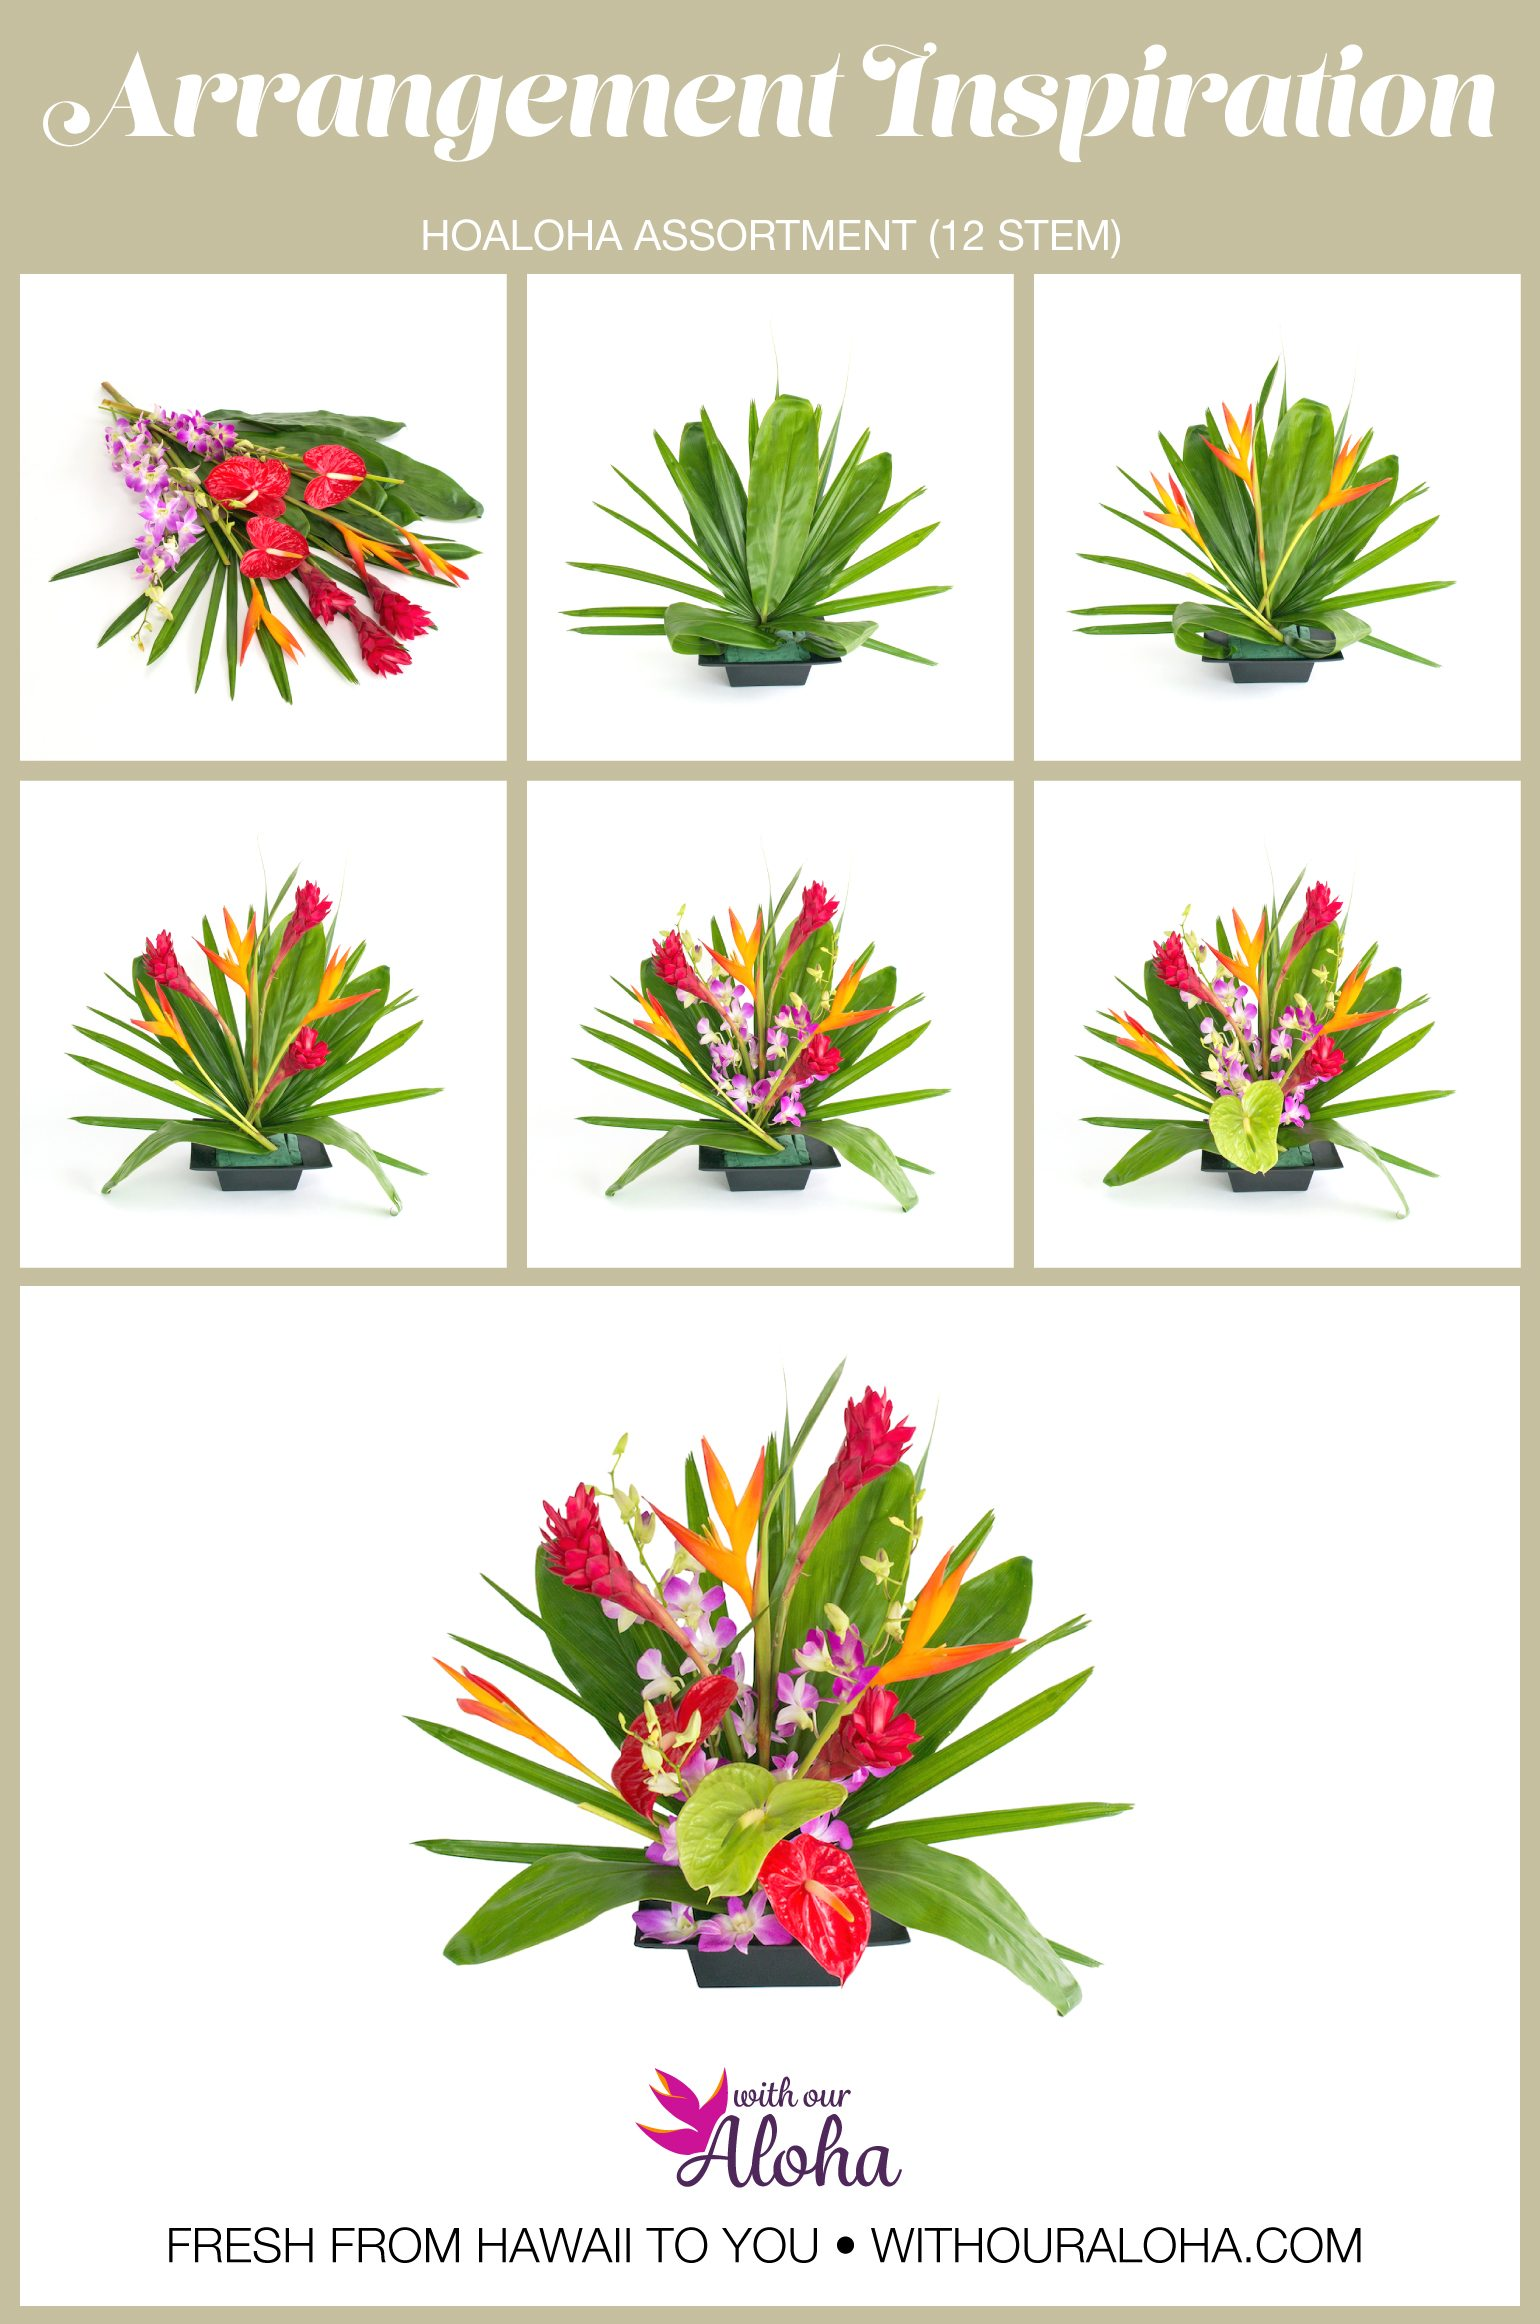 How to Arrange Hawaiian Flowers - With Our Aloha